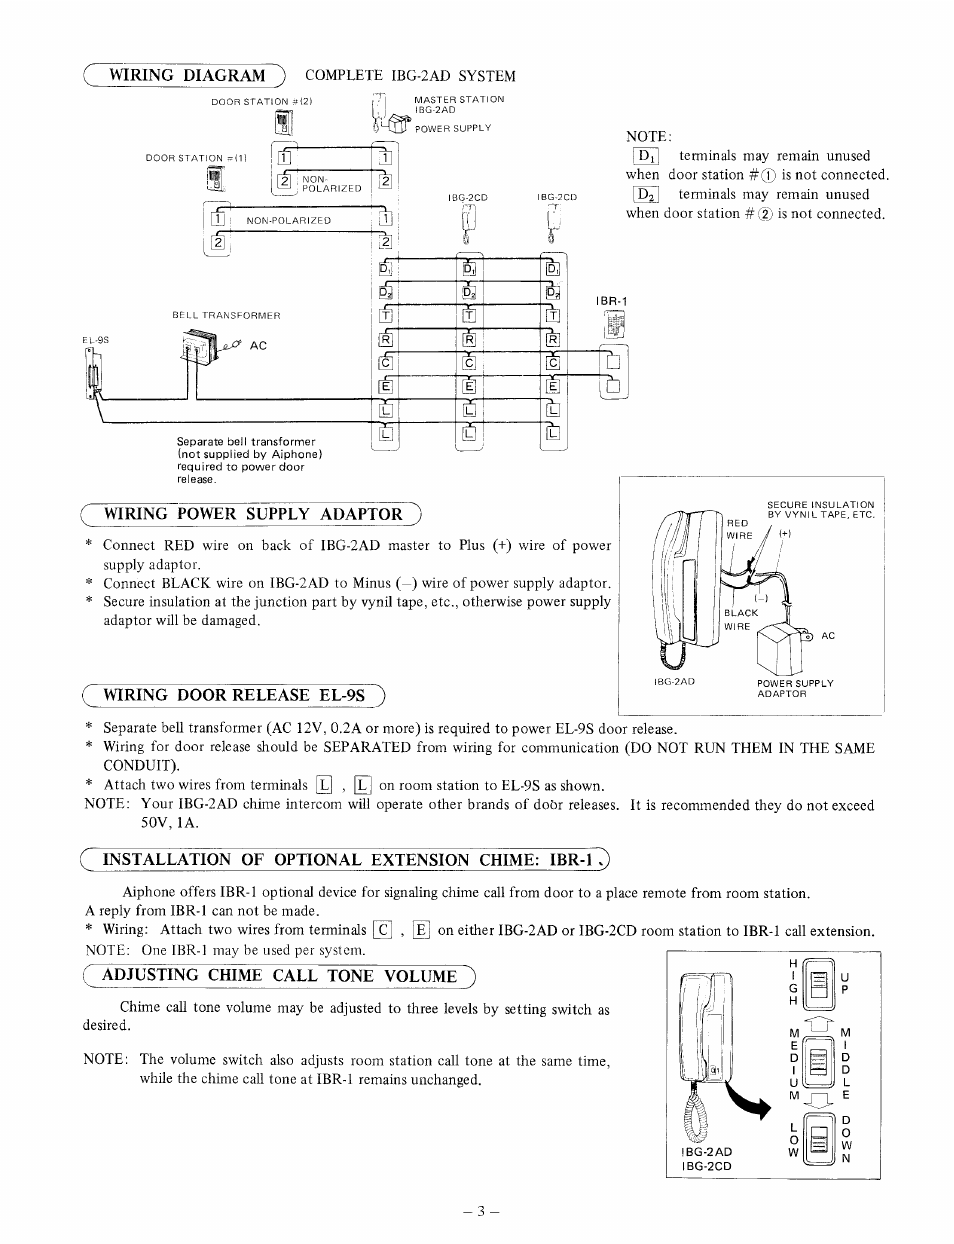 medium resolution of wiring power supply adaptor wiring door release el 9s installation of optional extension chime ibrtq aiphone ibg 2ad user manual page 3 4